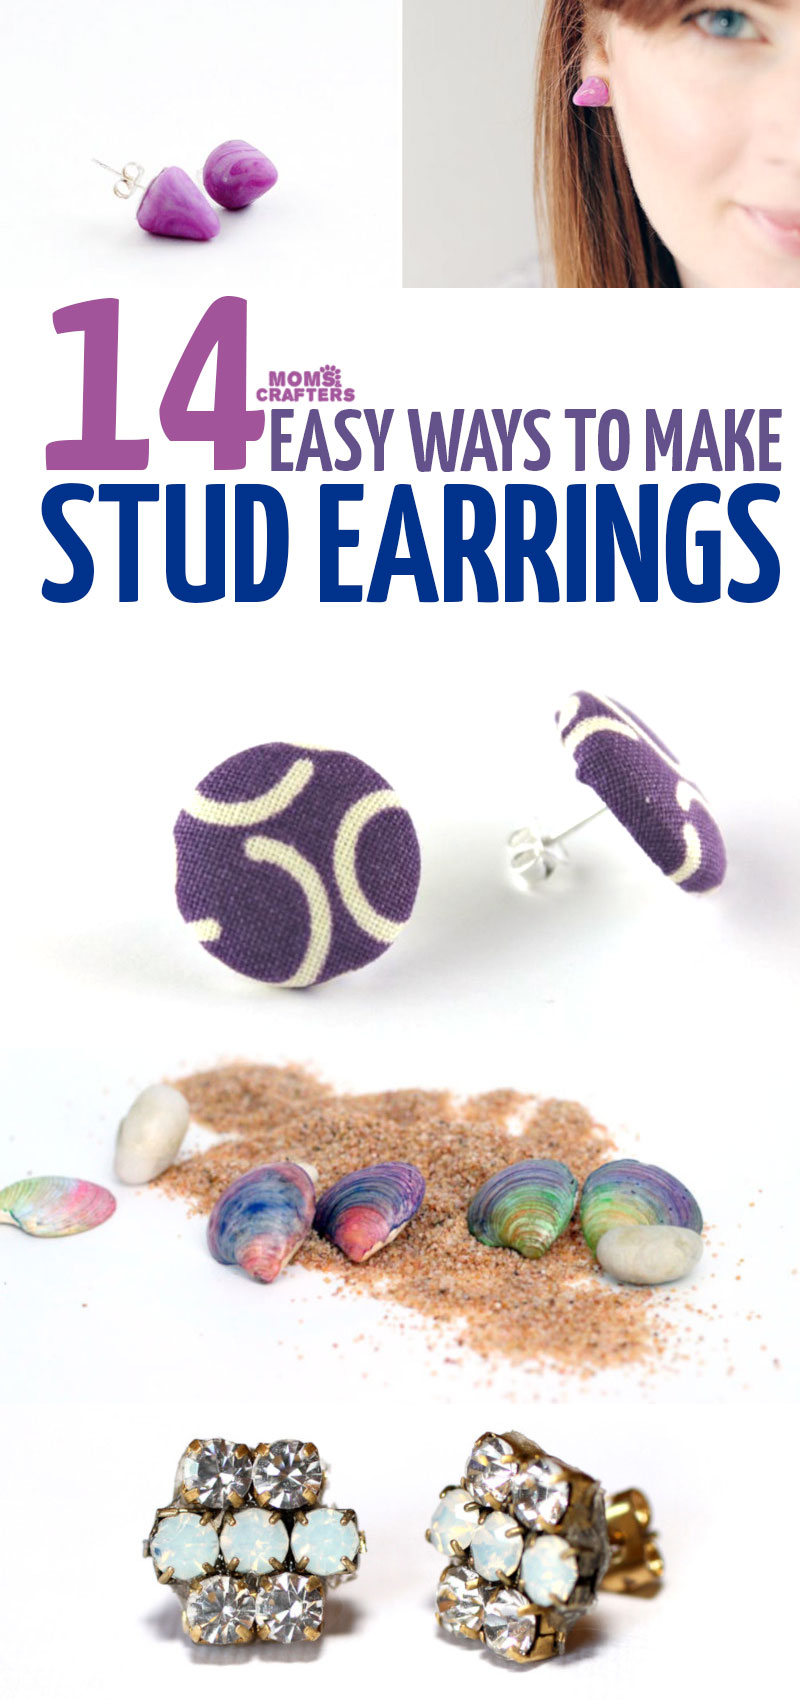 Click for some beautiful statement stud earrings DIY ideas for teens and tweens, and grown-ups too! This beautiful easy DIY jewelry is perfect for beginners.